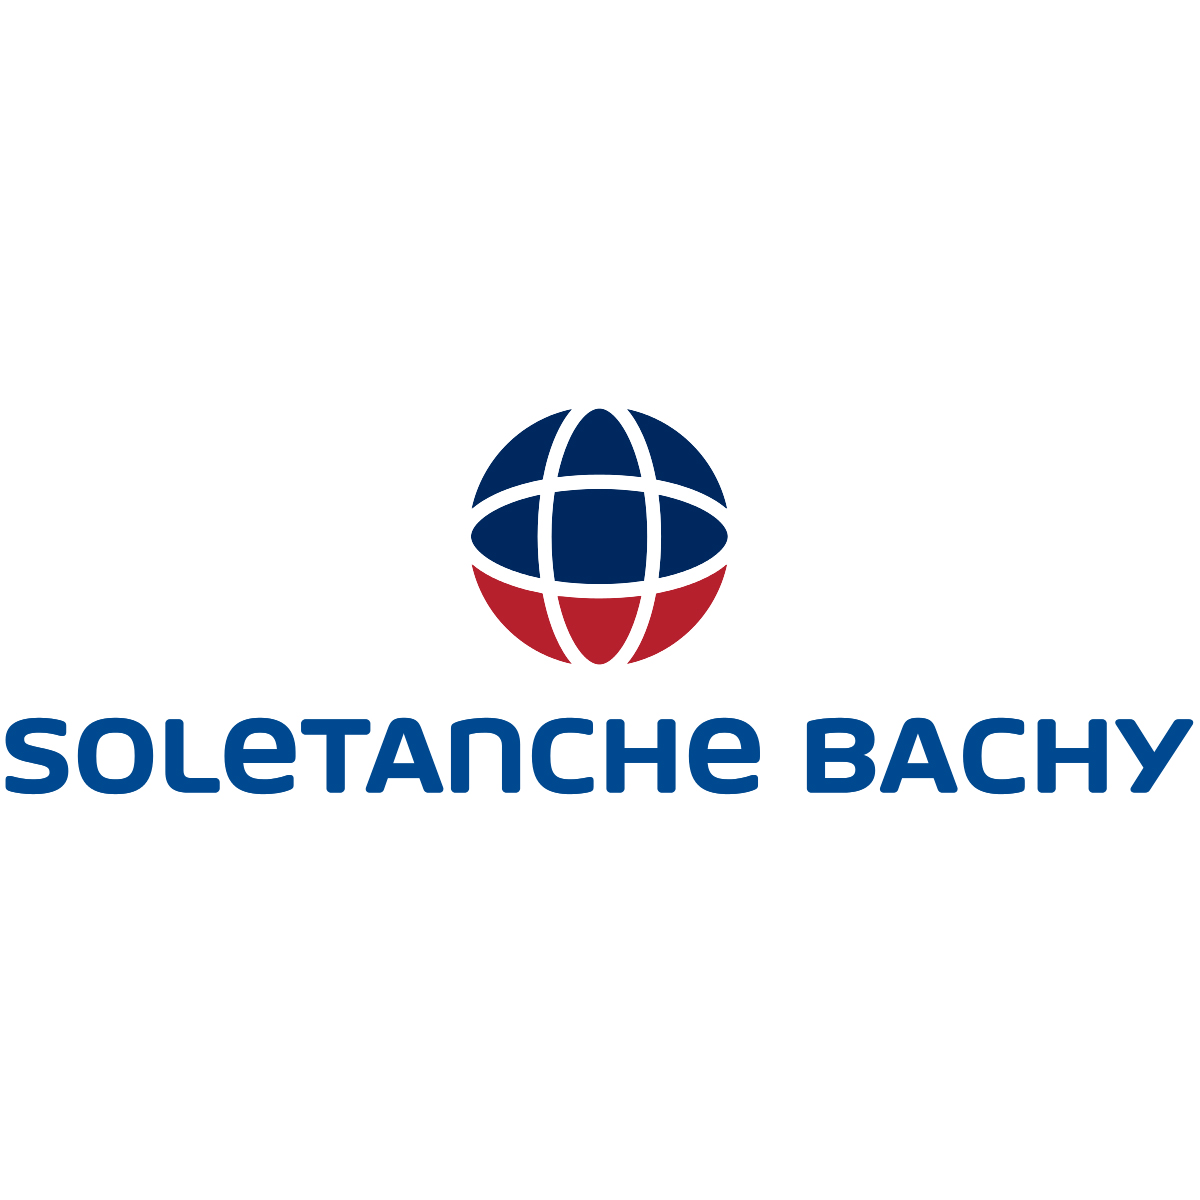 Soletanche Bachy France